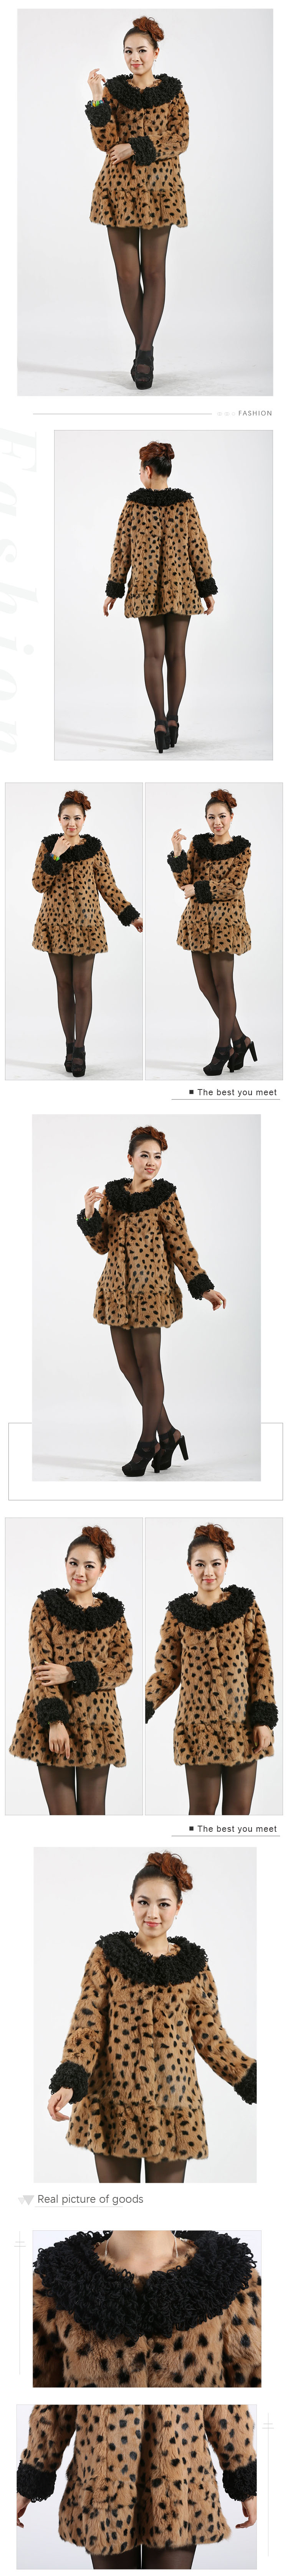 long style rabbit fur coat leopard pattern comfortable women fashion fur coat